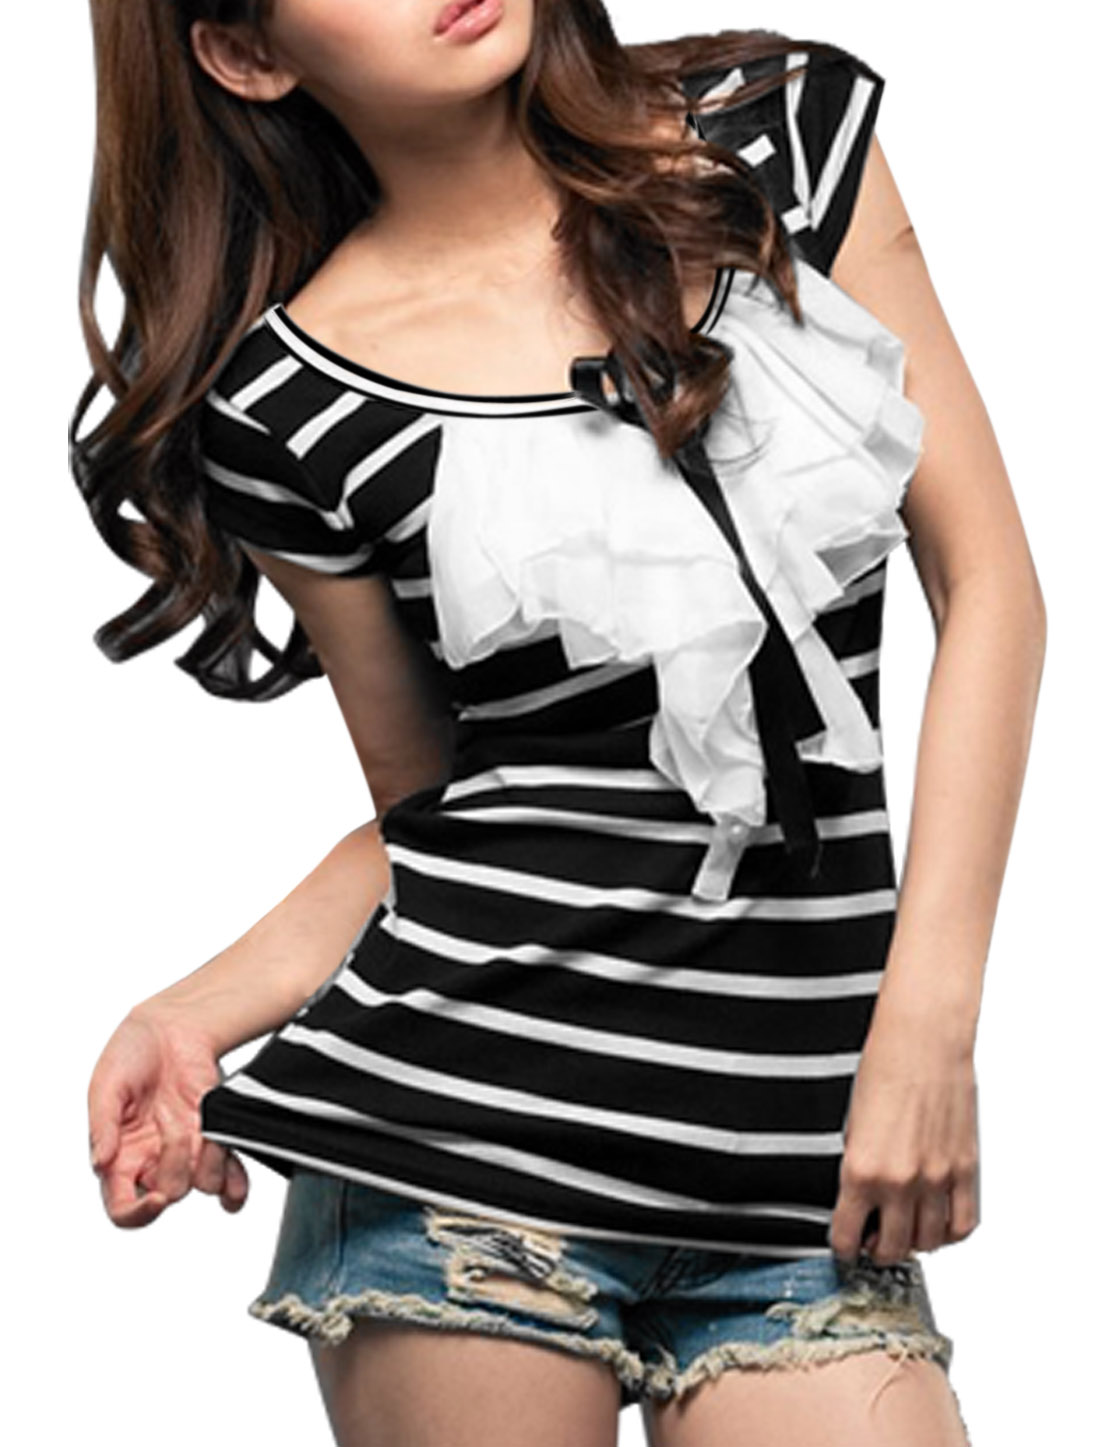 Ladies Scoop Neck Short Sleeve Black White Striped Tee Shirt L